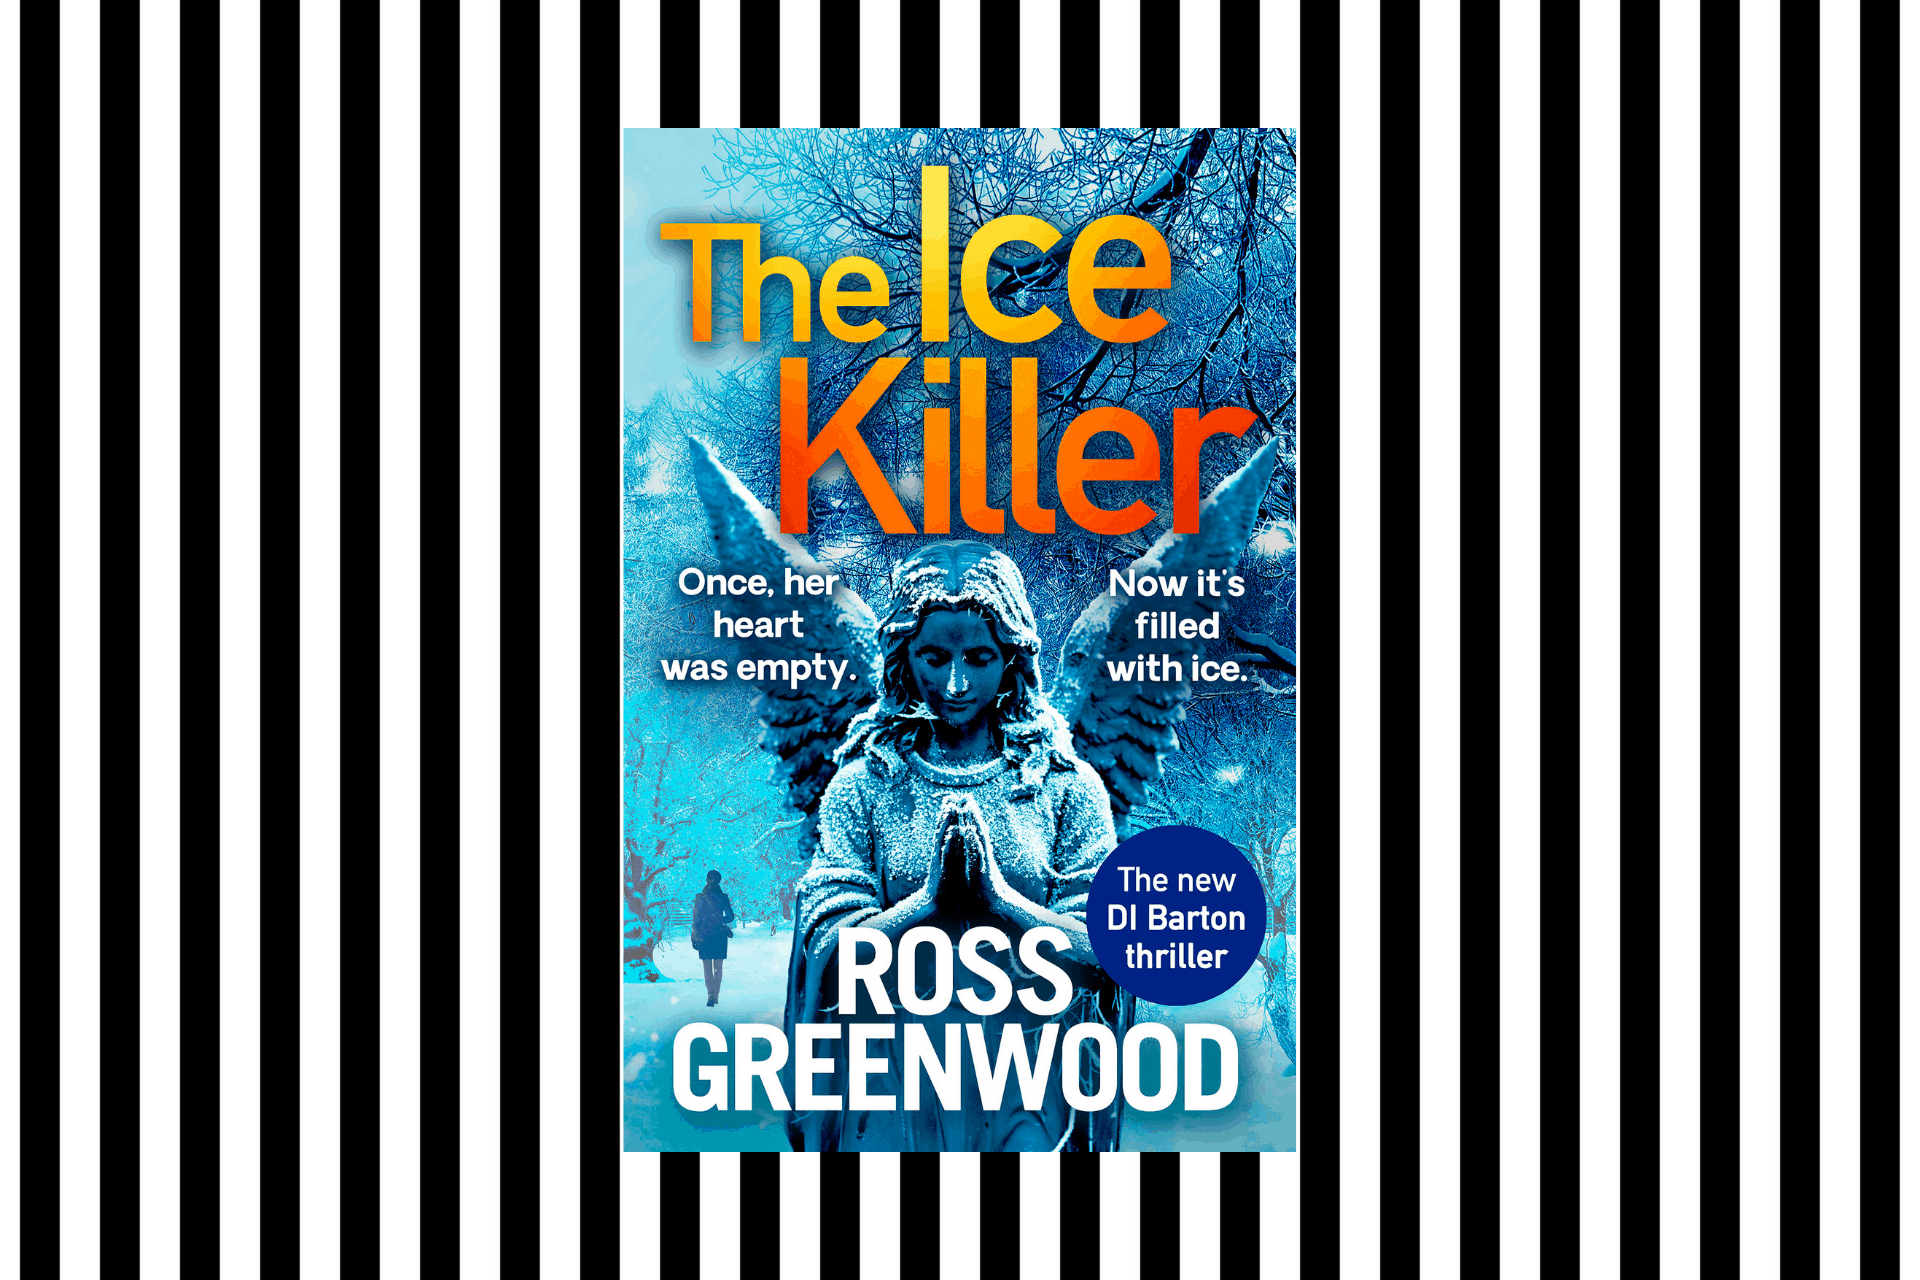 The cover of The Ice Killer by Ross Greenwood